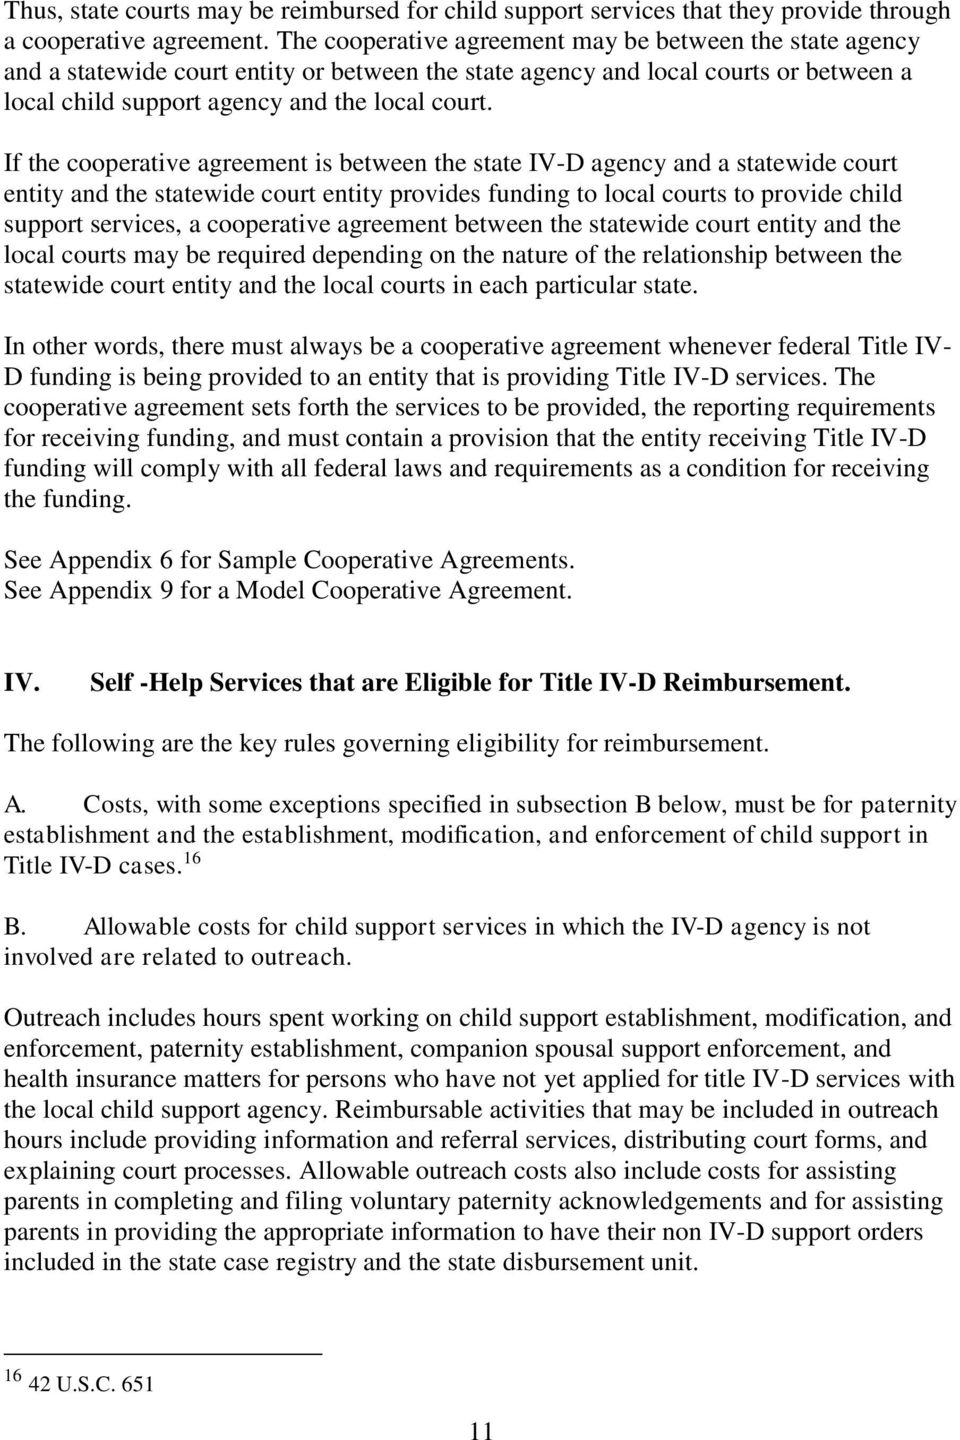 Resource Guide Use Of Title IV D Child Support Program